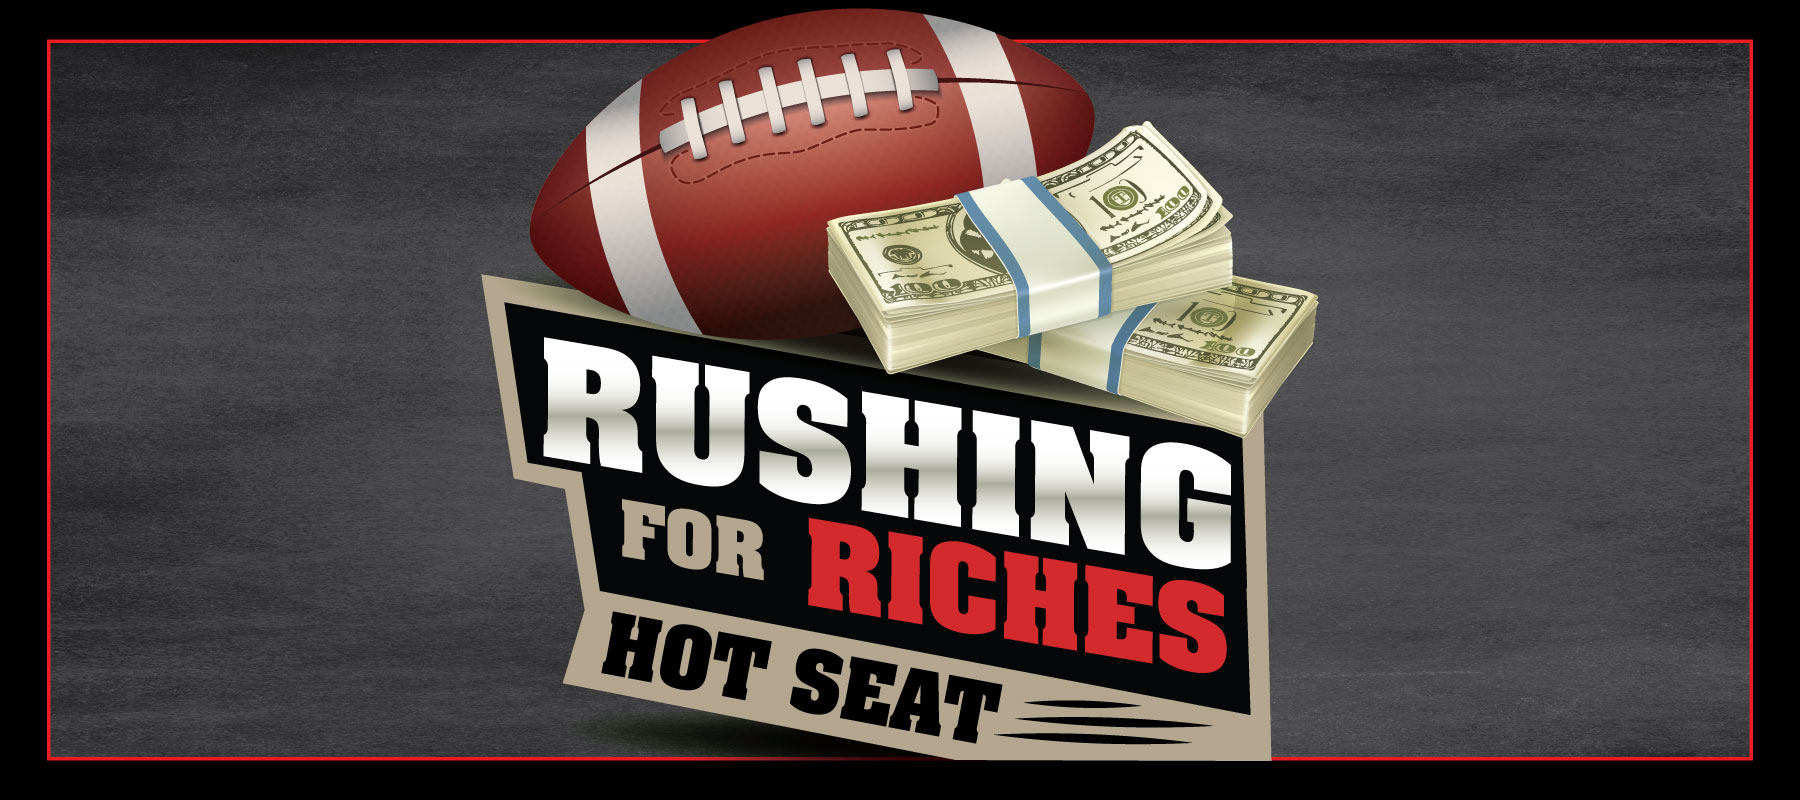 Rushing for Riches Hot Seat